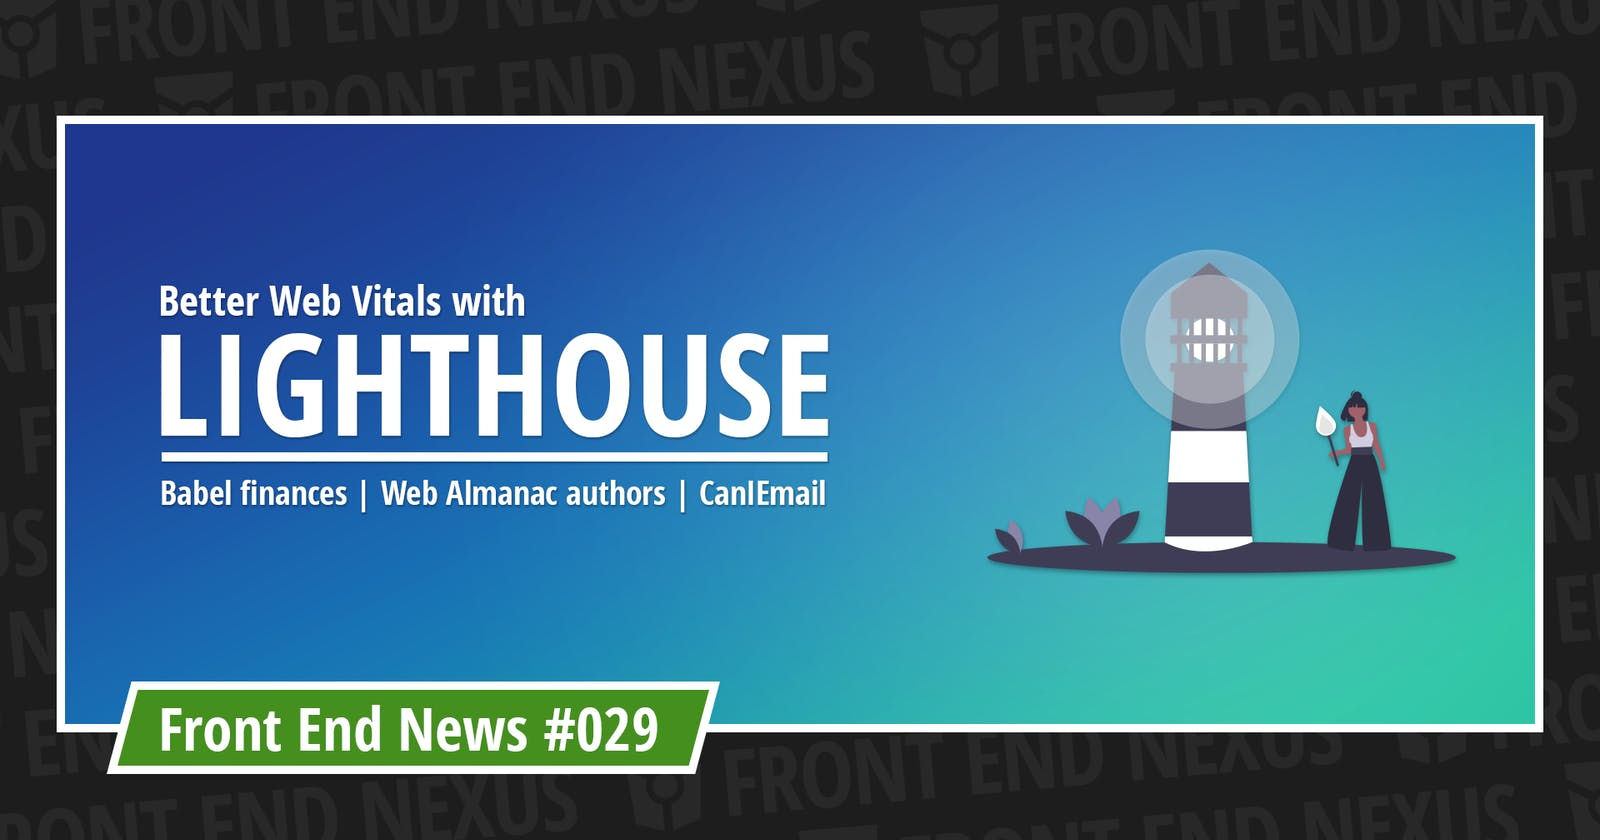 Better Web Vitals with Lighthouse, why is Babel running out of money, Web Almanac needs authors, and presenting CanIEmail | Front End News #029